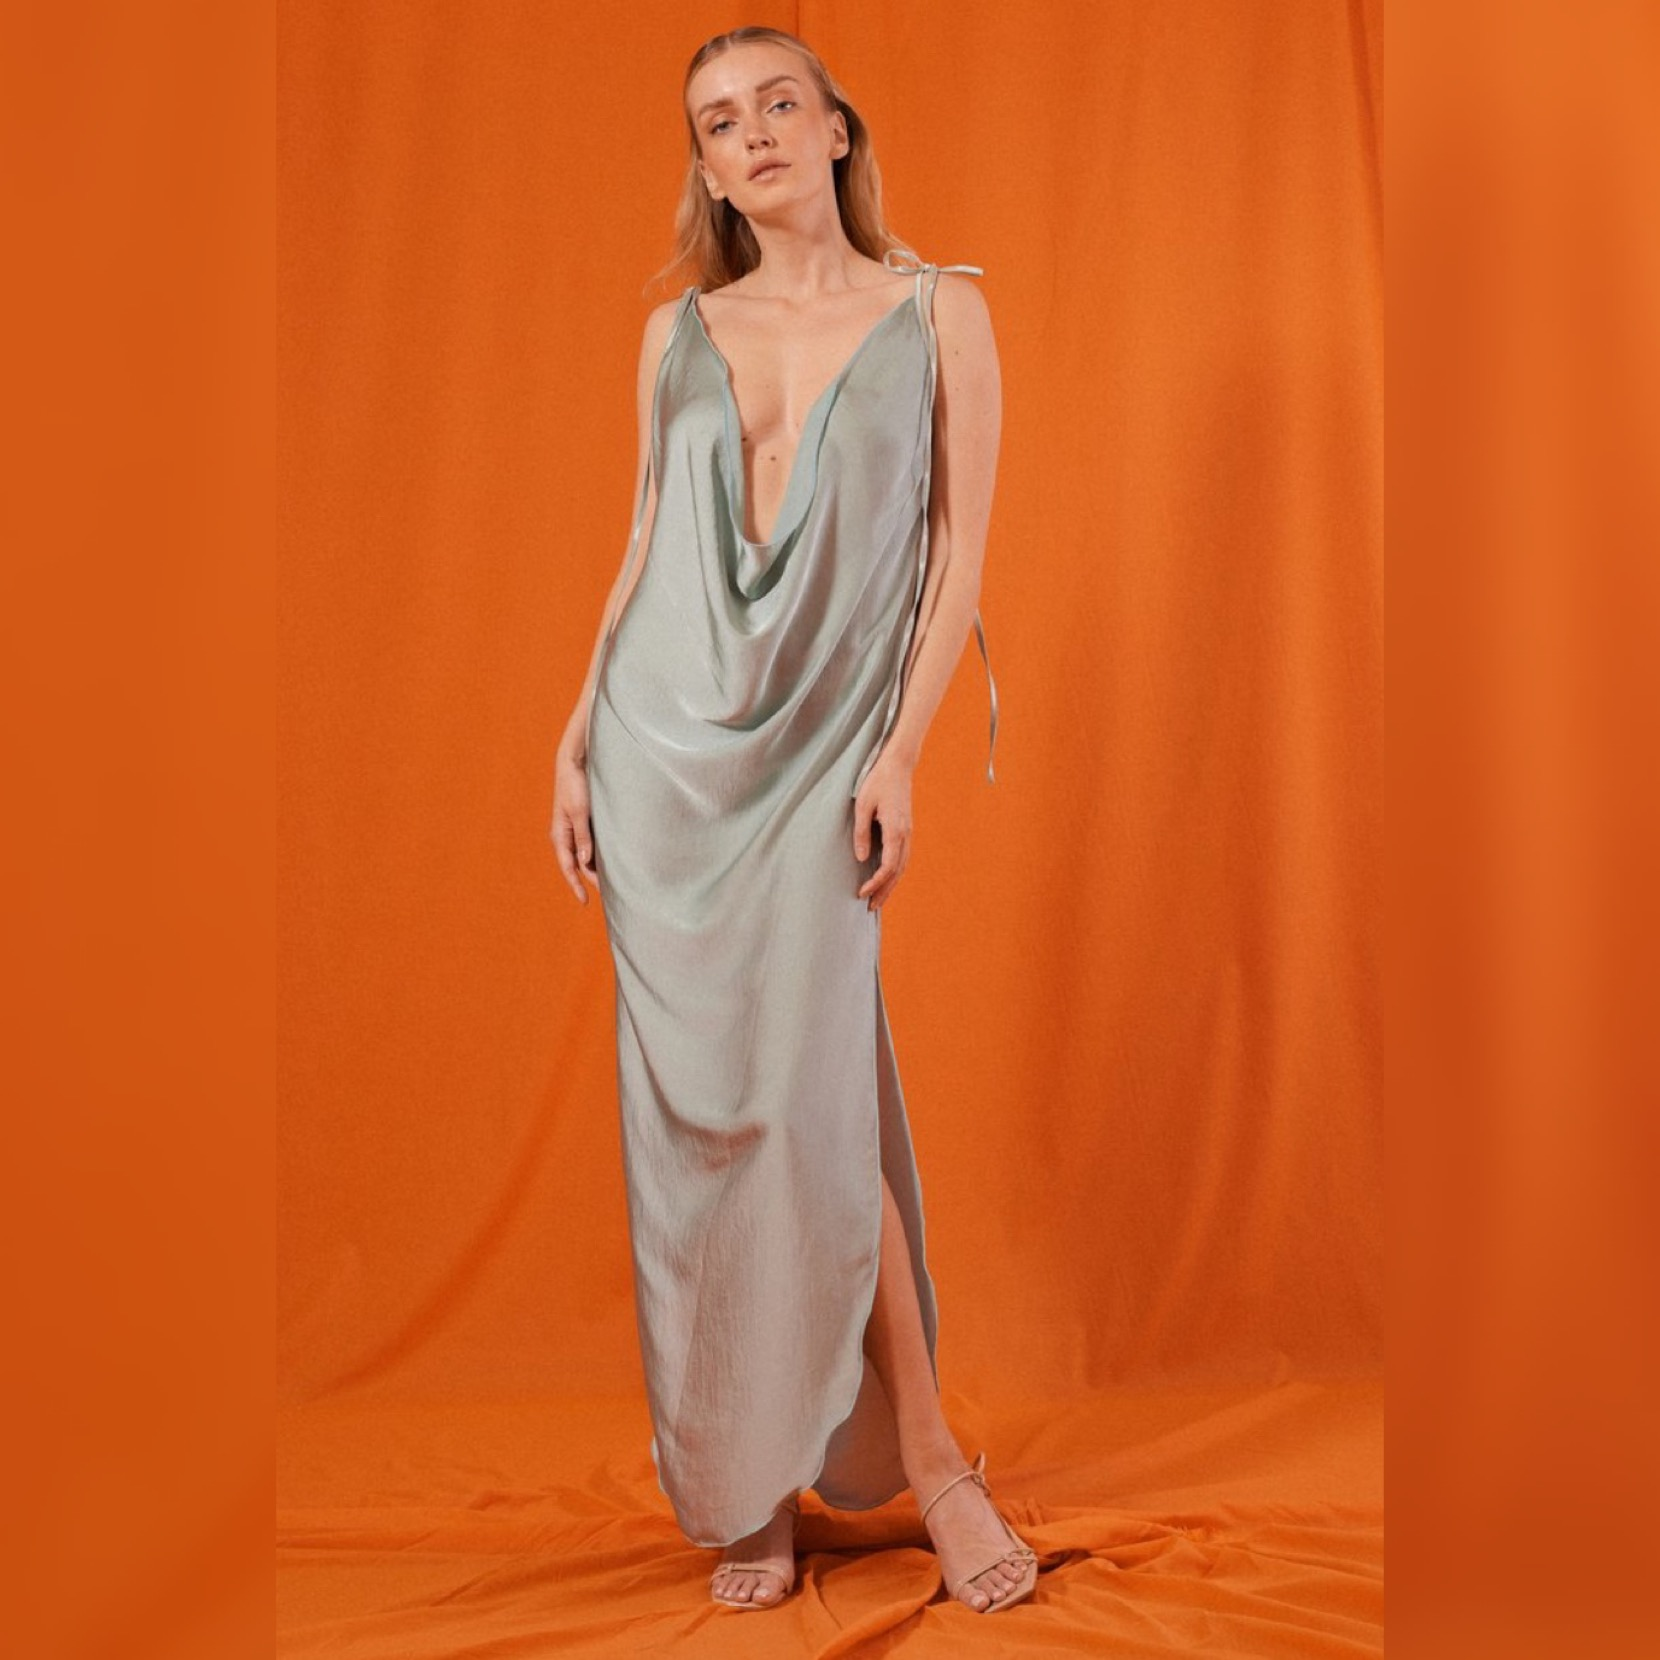 PARLA DOUBLE DRAPE DRESS in SEAFOAM PEACE SILK by Saint Mojavi for use by 360 Magazine